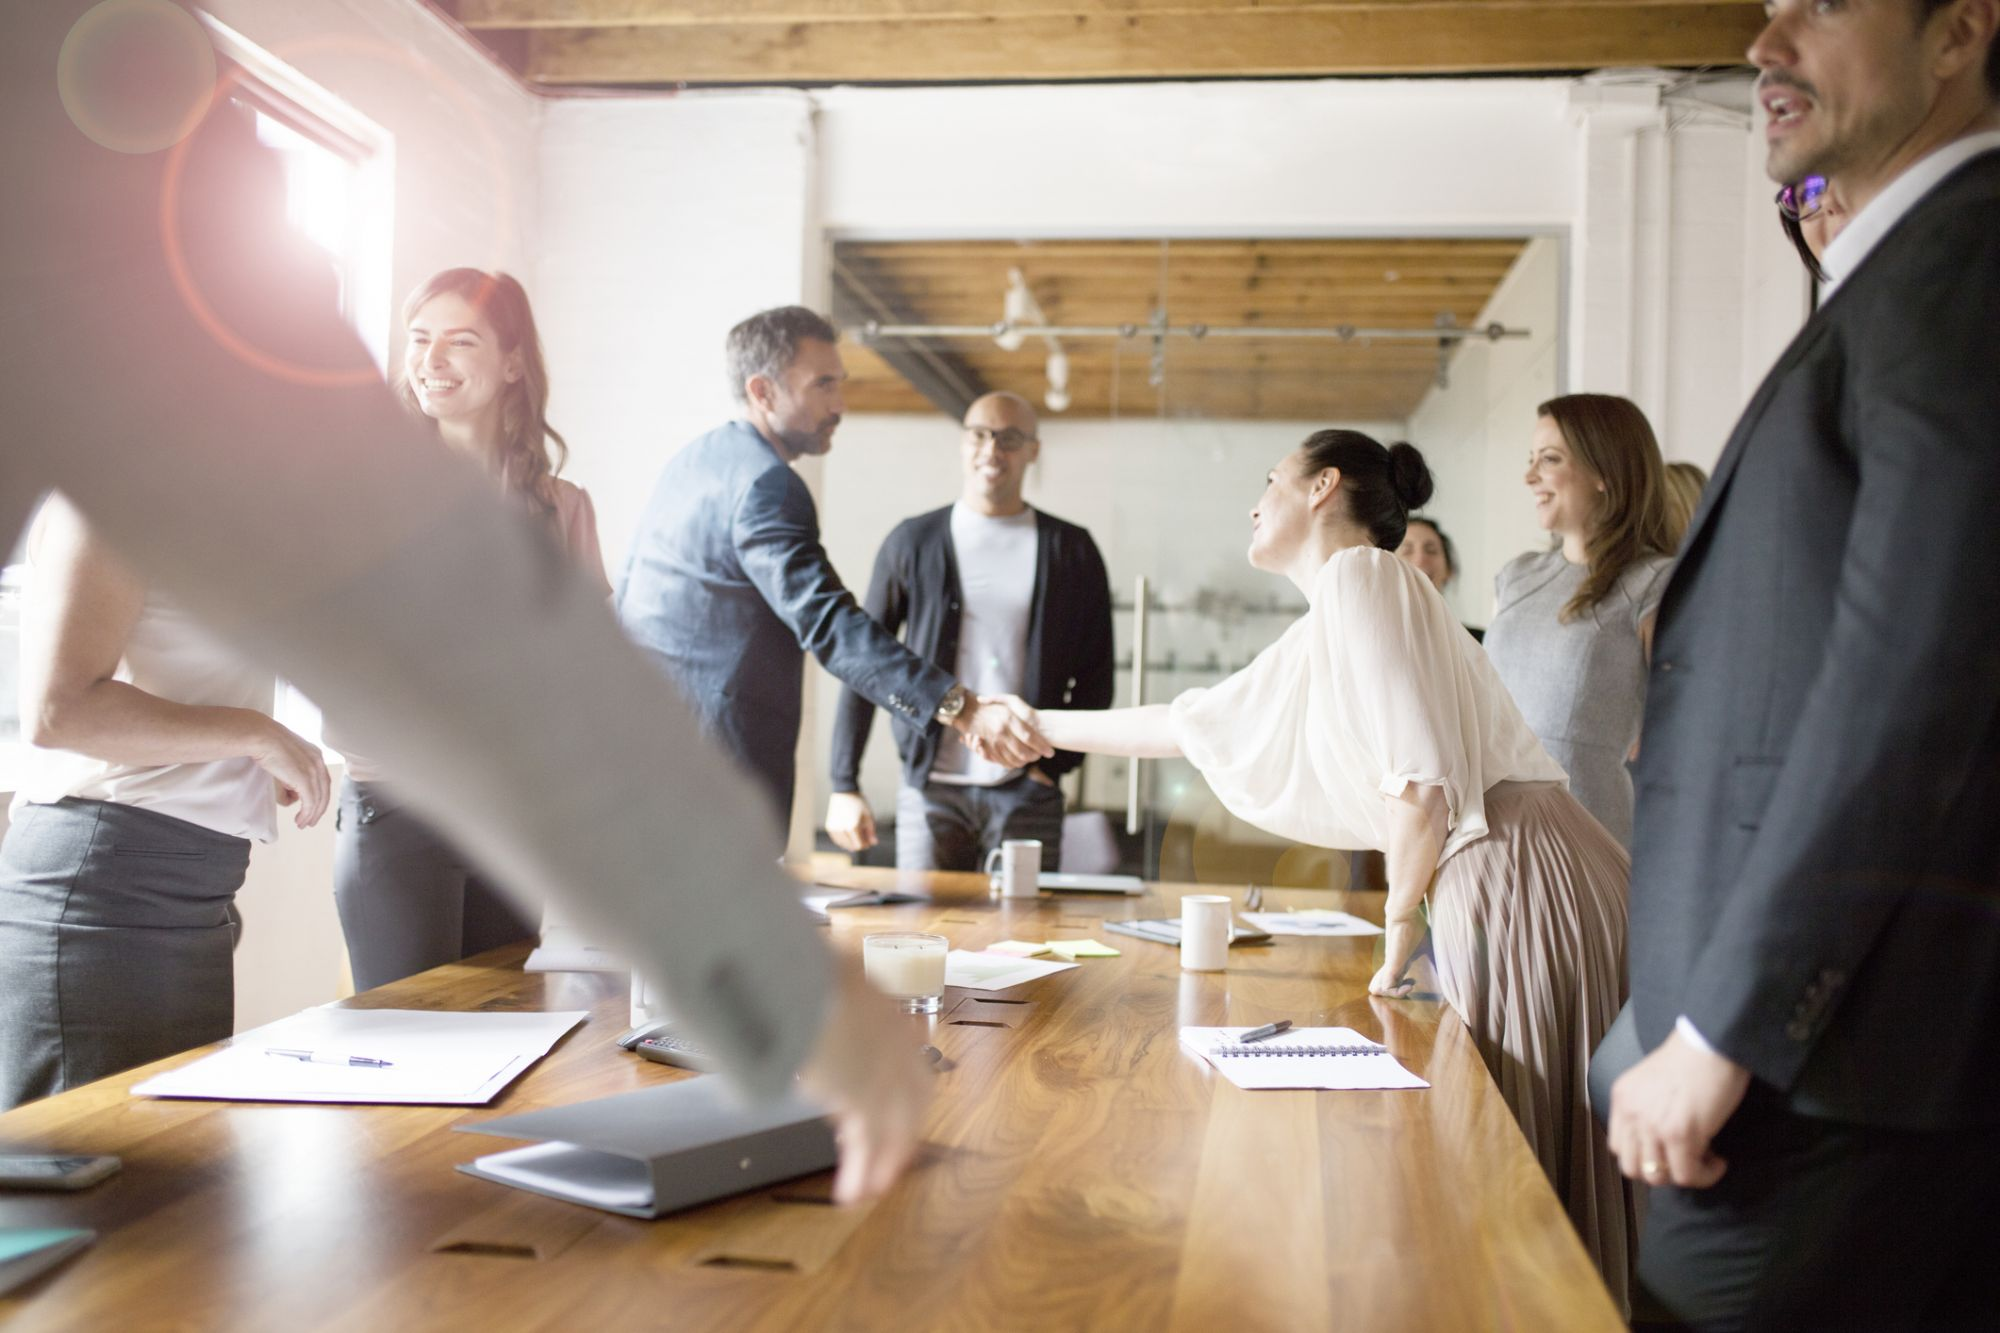 Ways to Lead Agencies and Outside Firms Like They're Part of Your Team